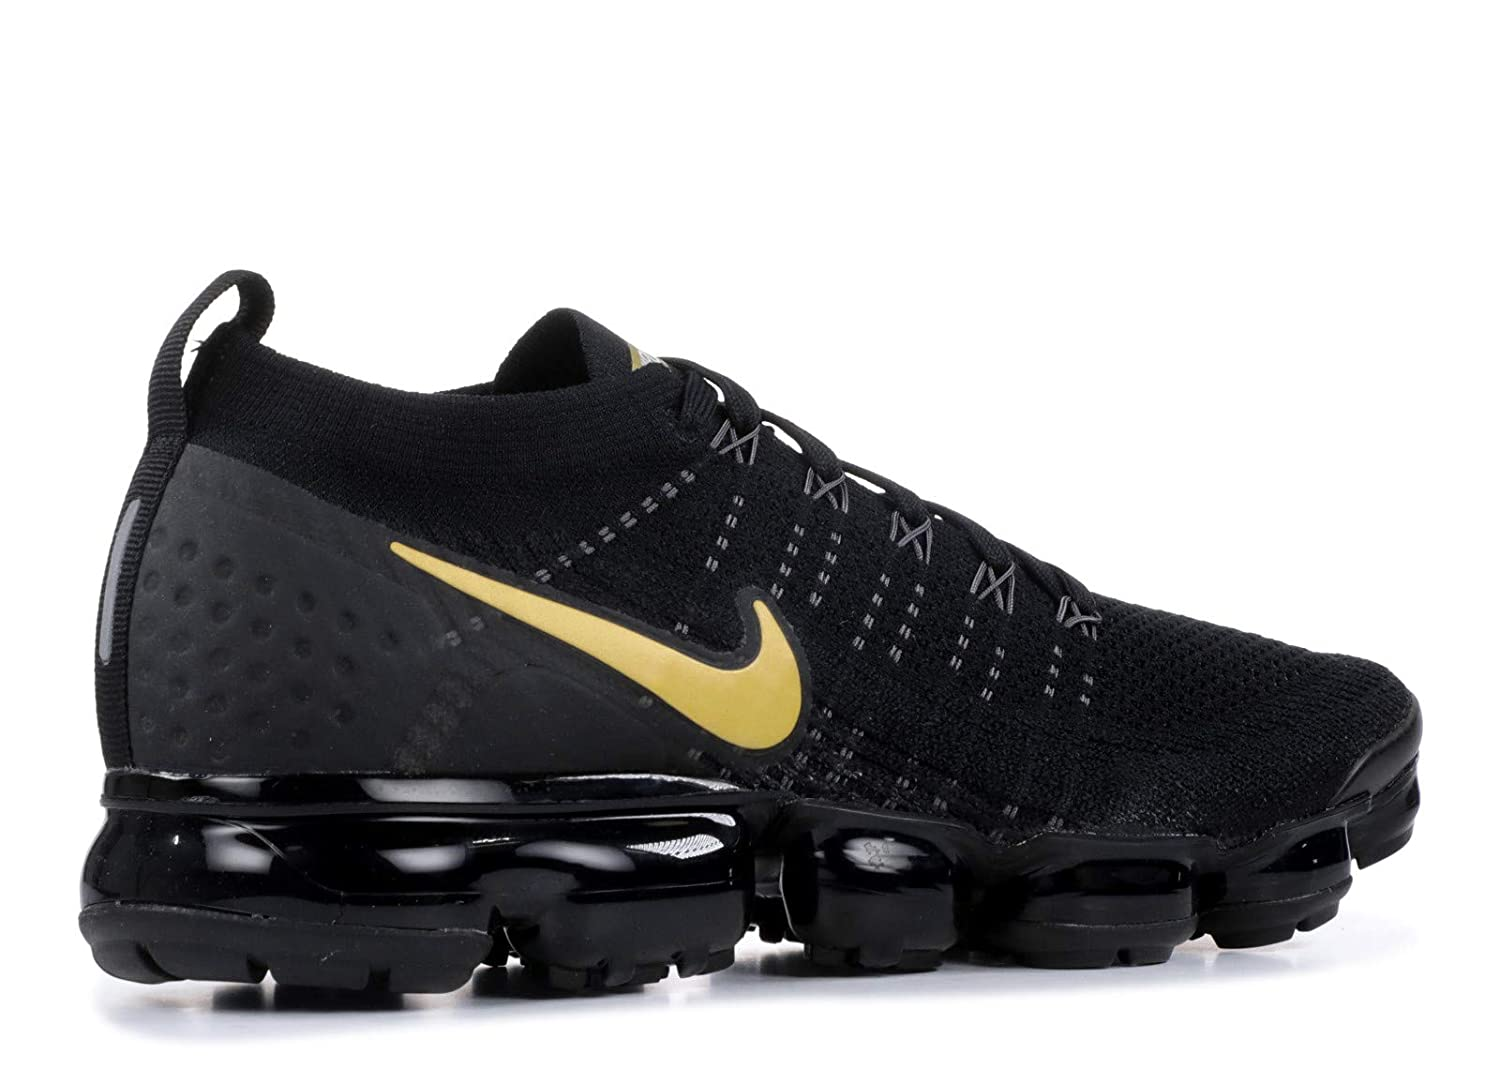 reputable site 39a3c d3595 Nike Women's W Air Vapormax Flyknit 2 Fitness Shoes